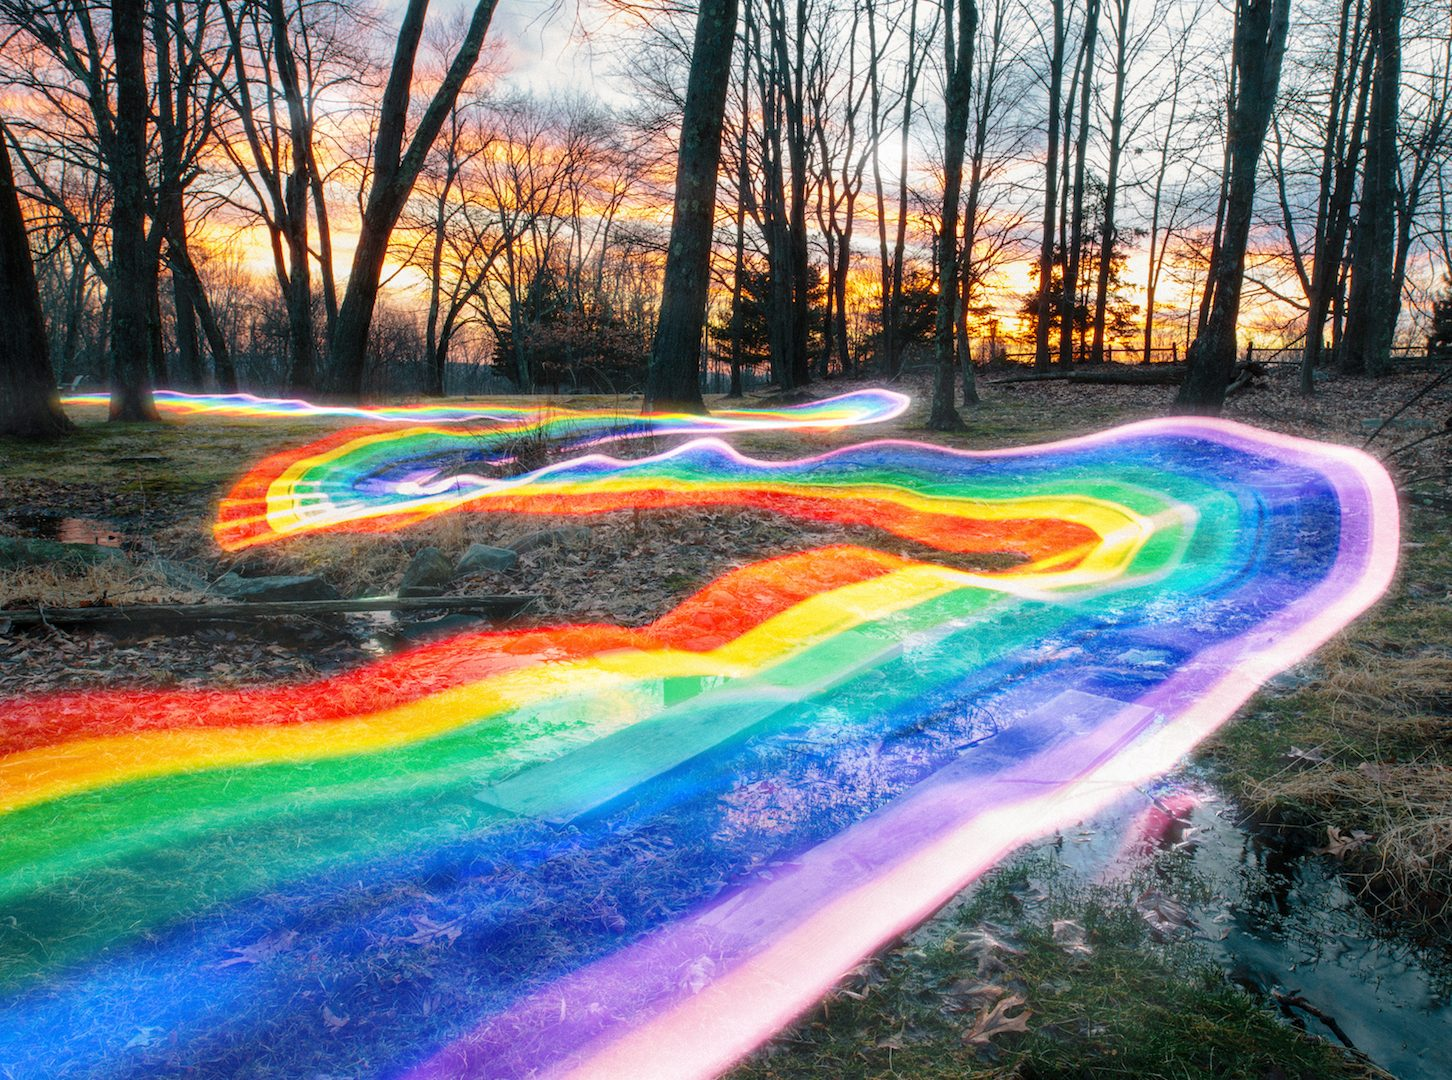 Rainbow Roads, Daniel Mercadante and his trails of rainbow